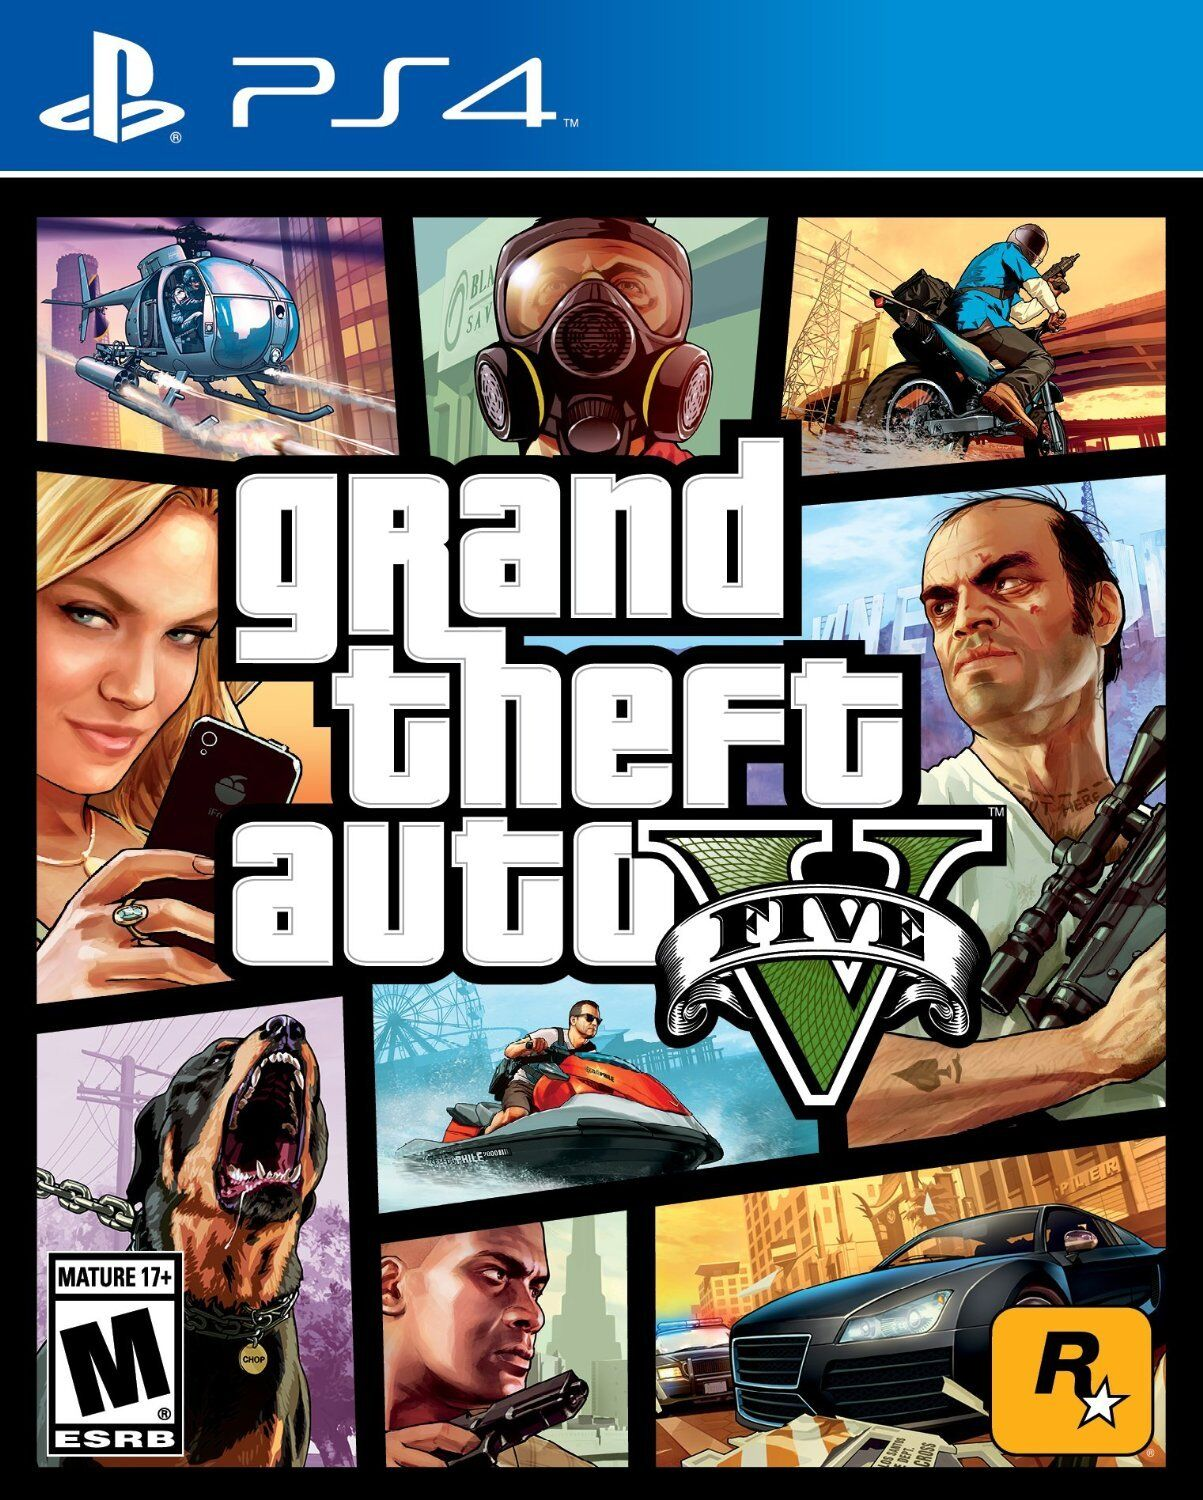 Grand Theft Auto 5 V (playstation 4 Ps4, Ntsc, Video Game...